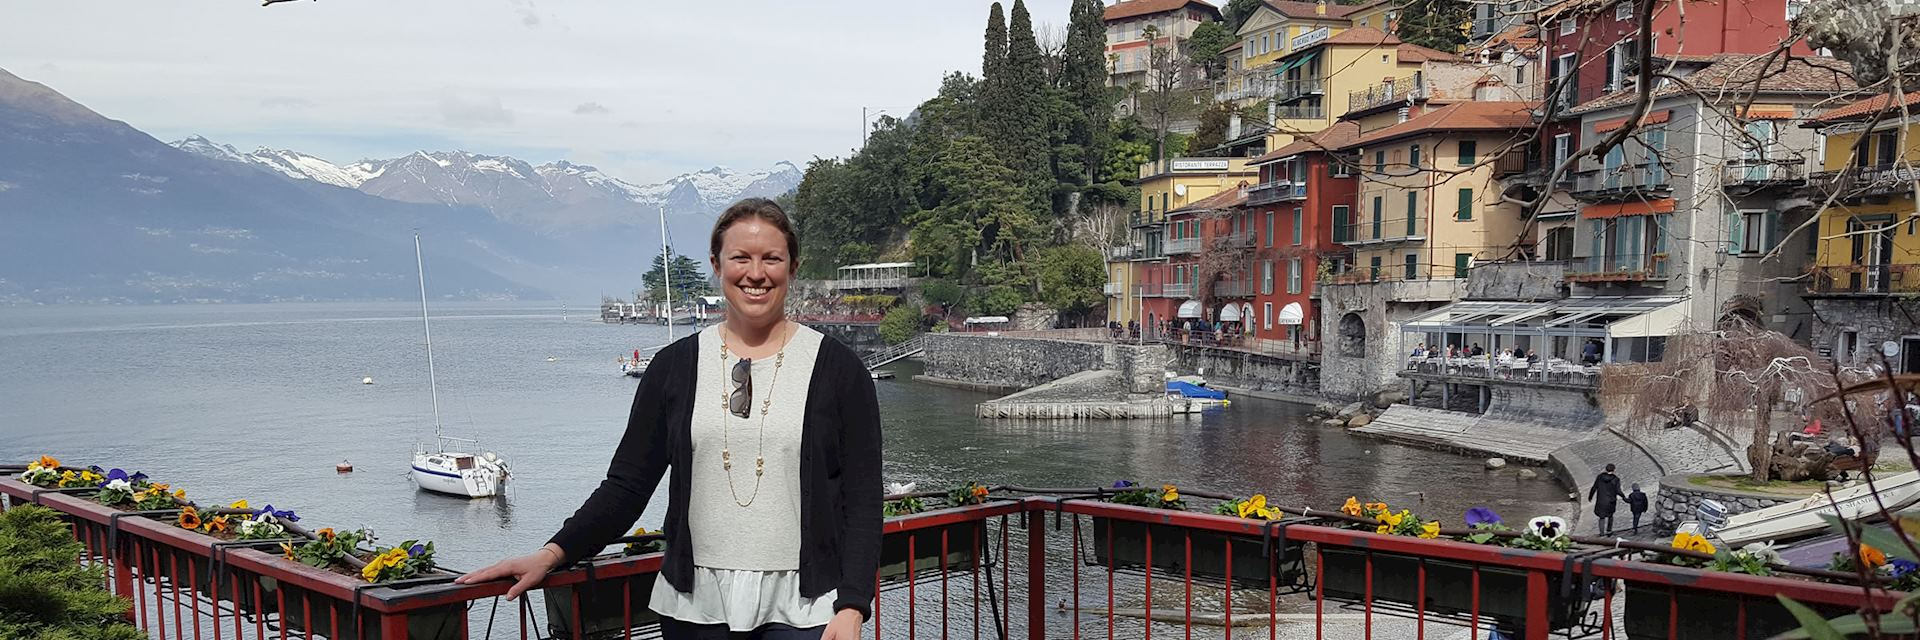 Lindsay at Bellagio, Lake Como